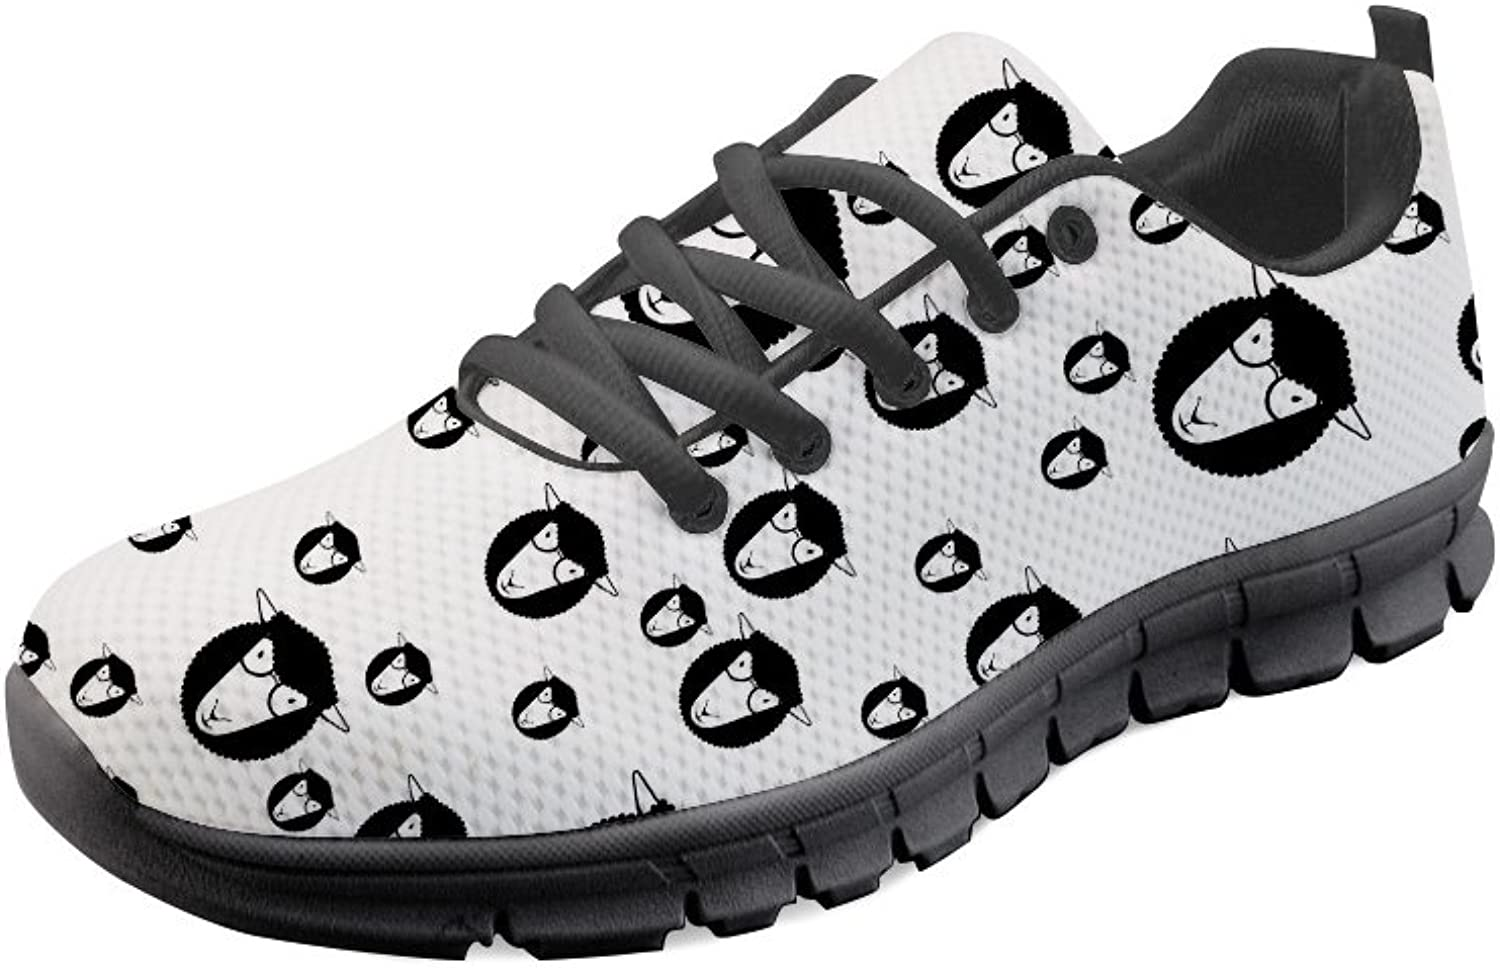 Freewander Casual Comfort Women Sport Sneakers Sport Safety shoes